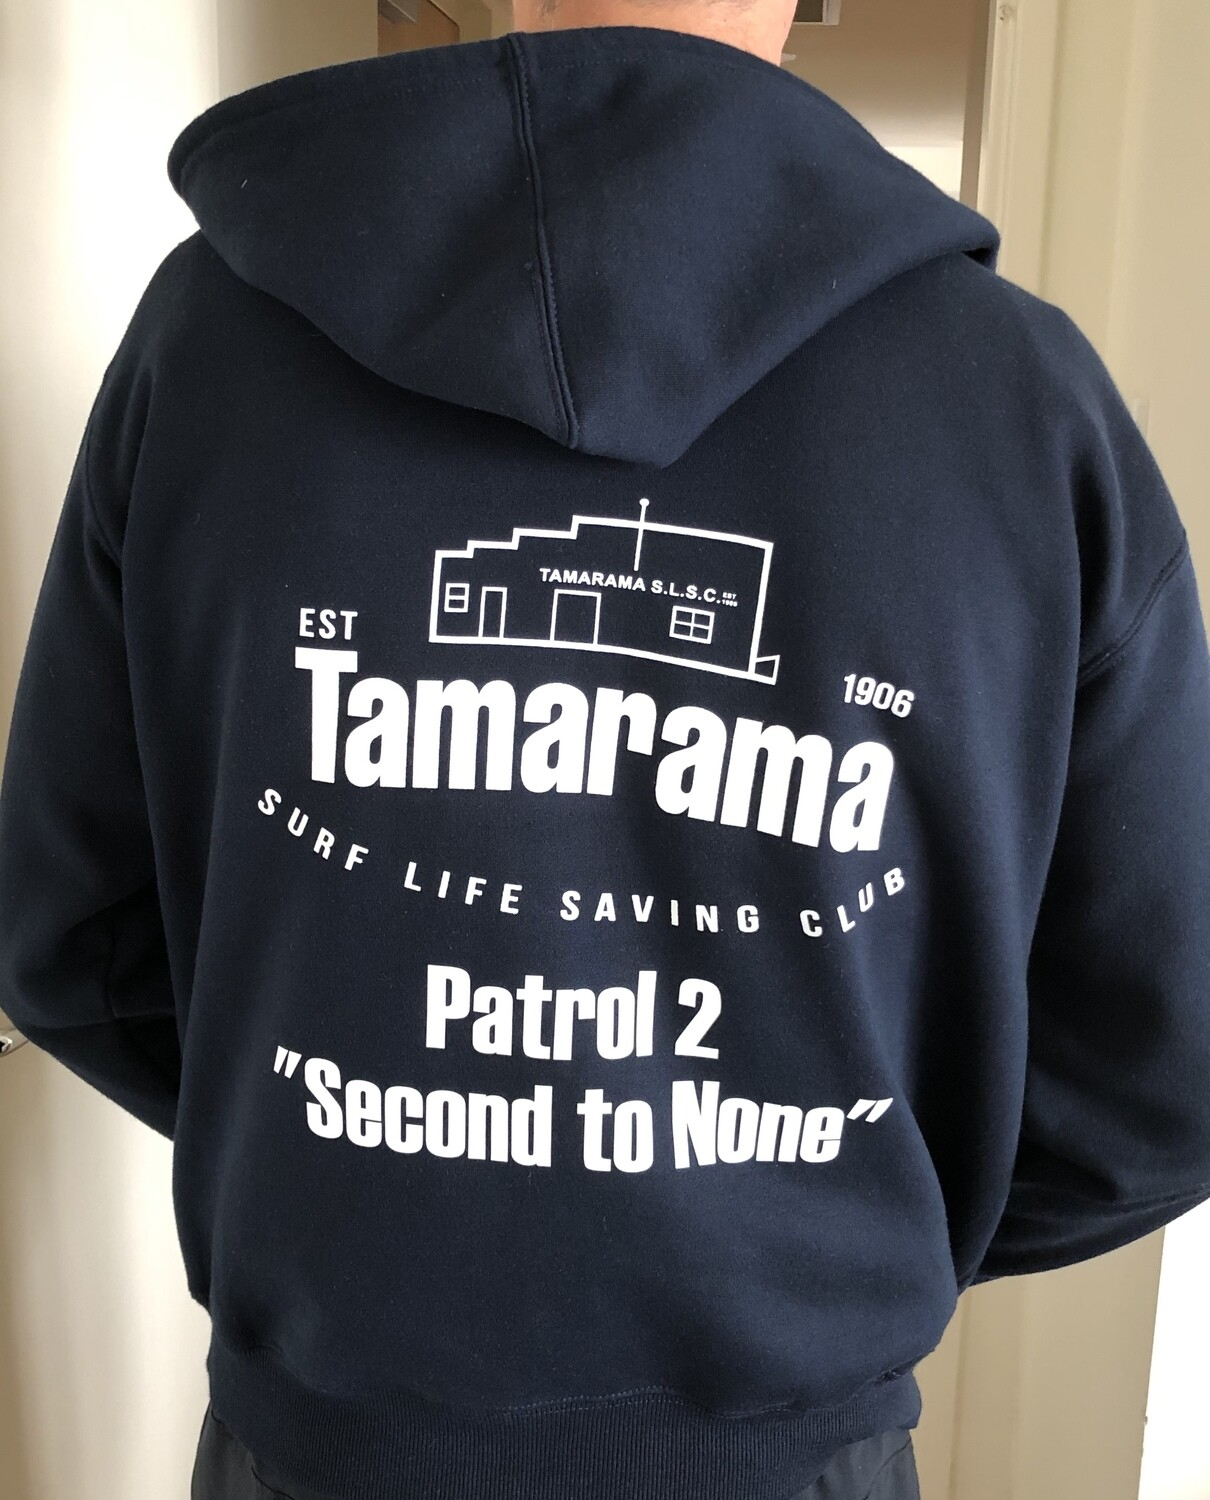 Hoodie - All sizes for limited time new order until Monday 30 March 2020. Custom labelling included.